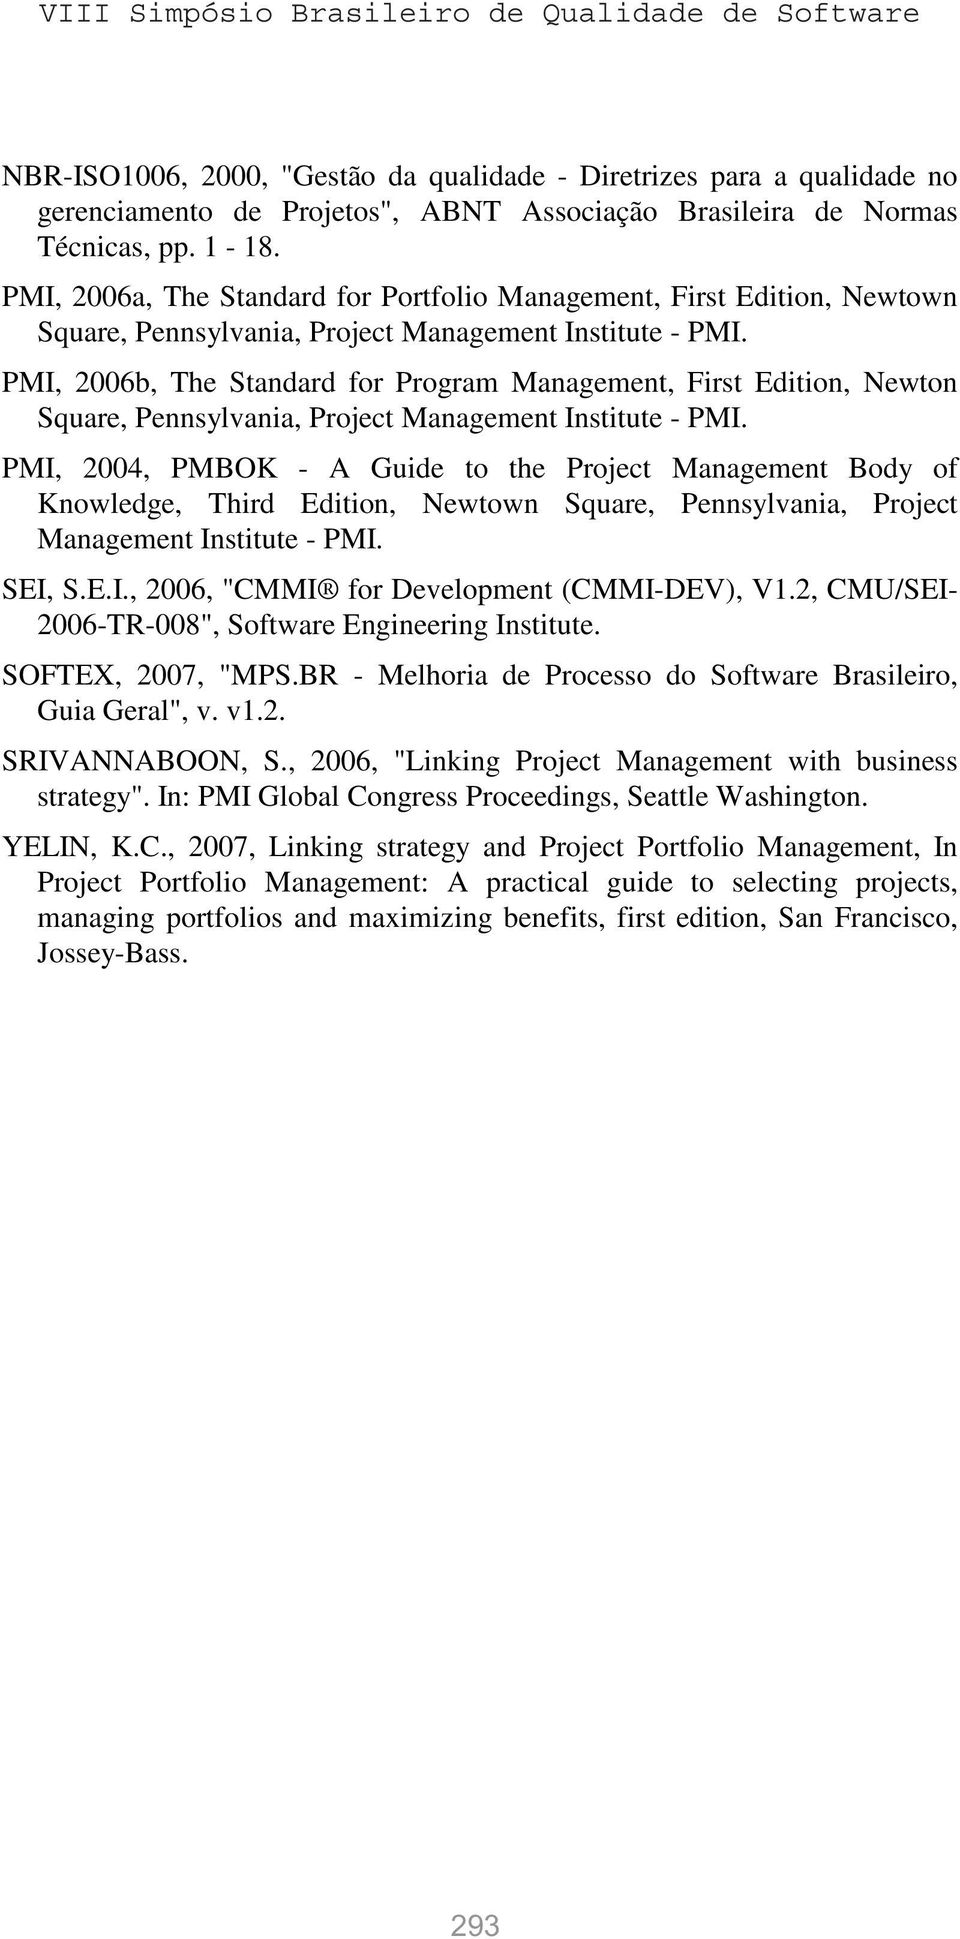 PMI, 2006b, The Standard for Program Management, First Edition, Newton Square, Pennsylvania, Project Management Institute - PMI.